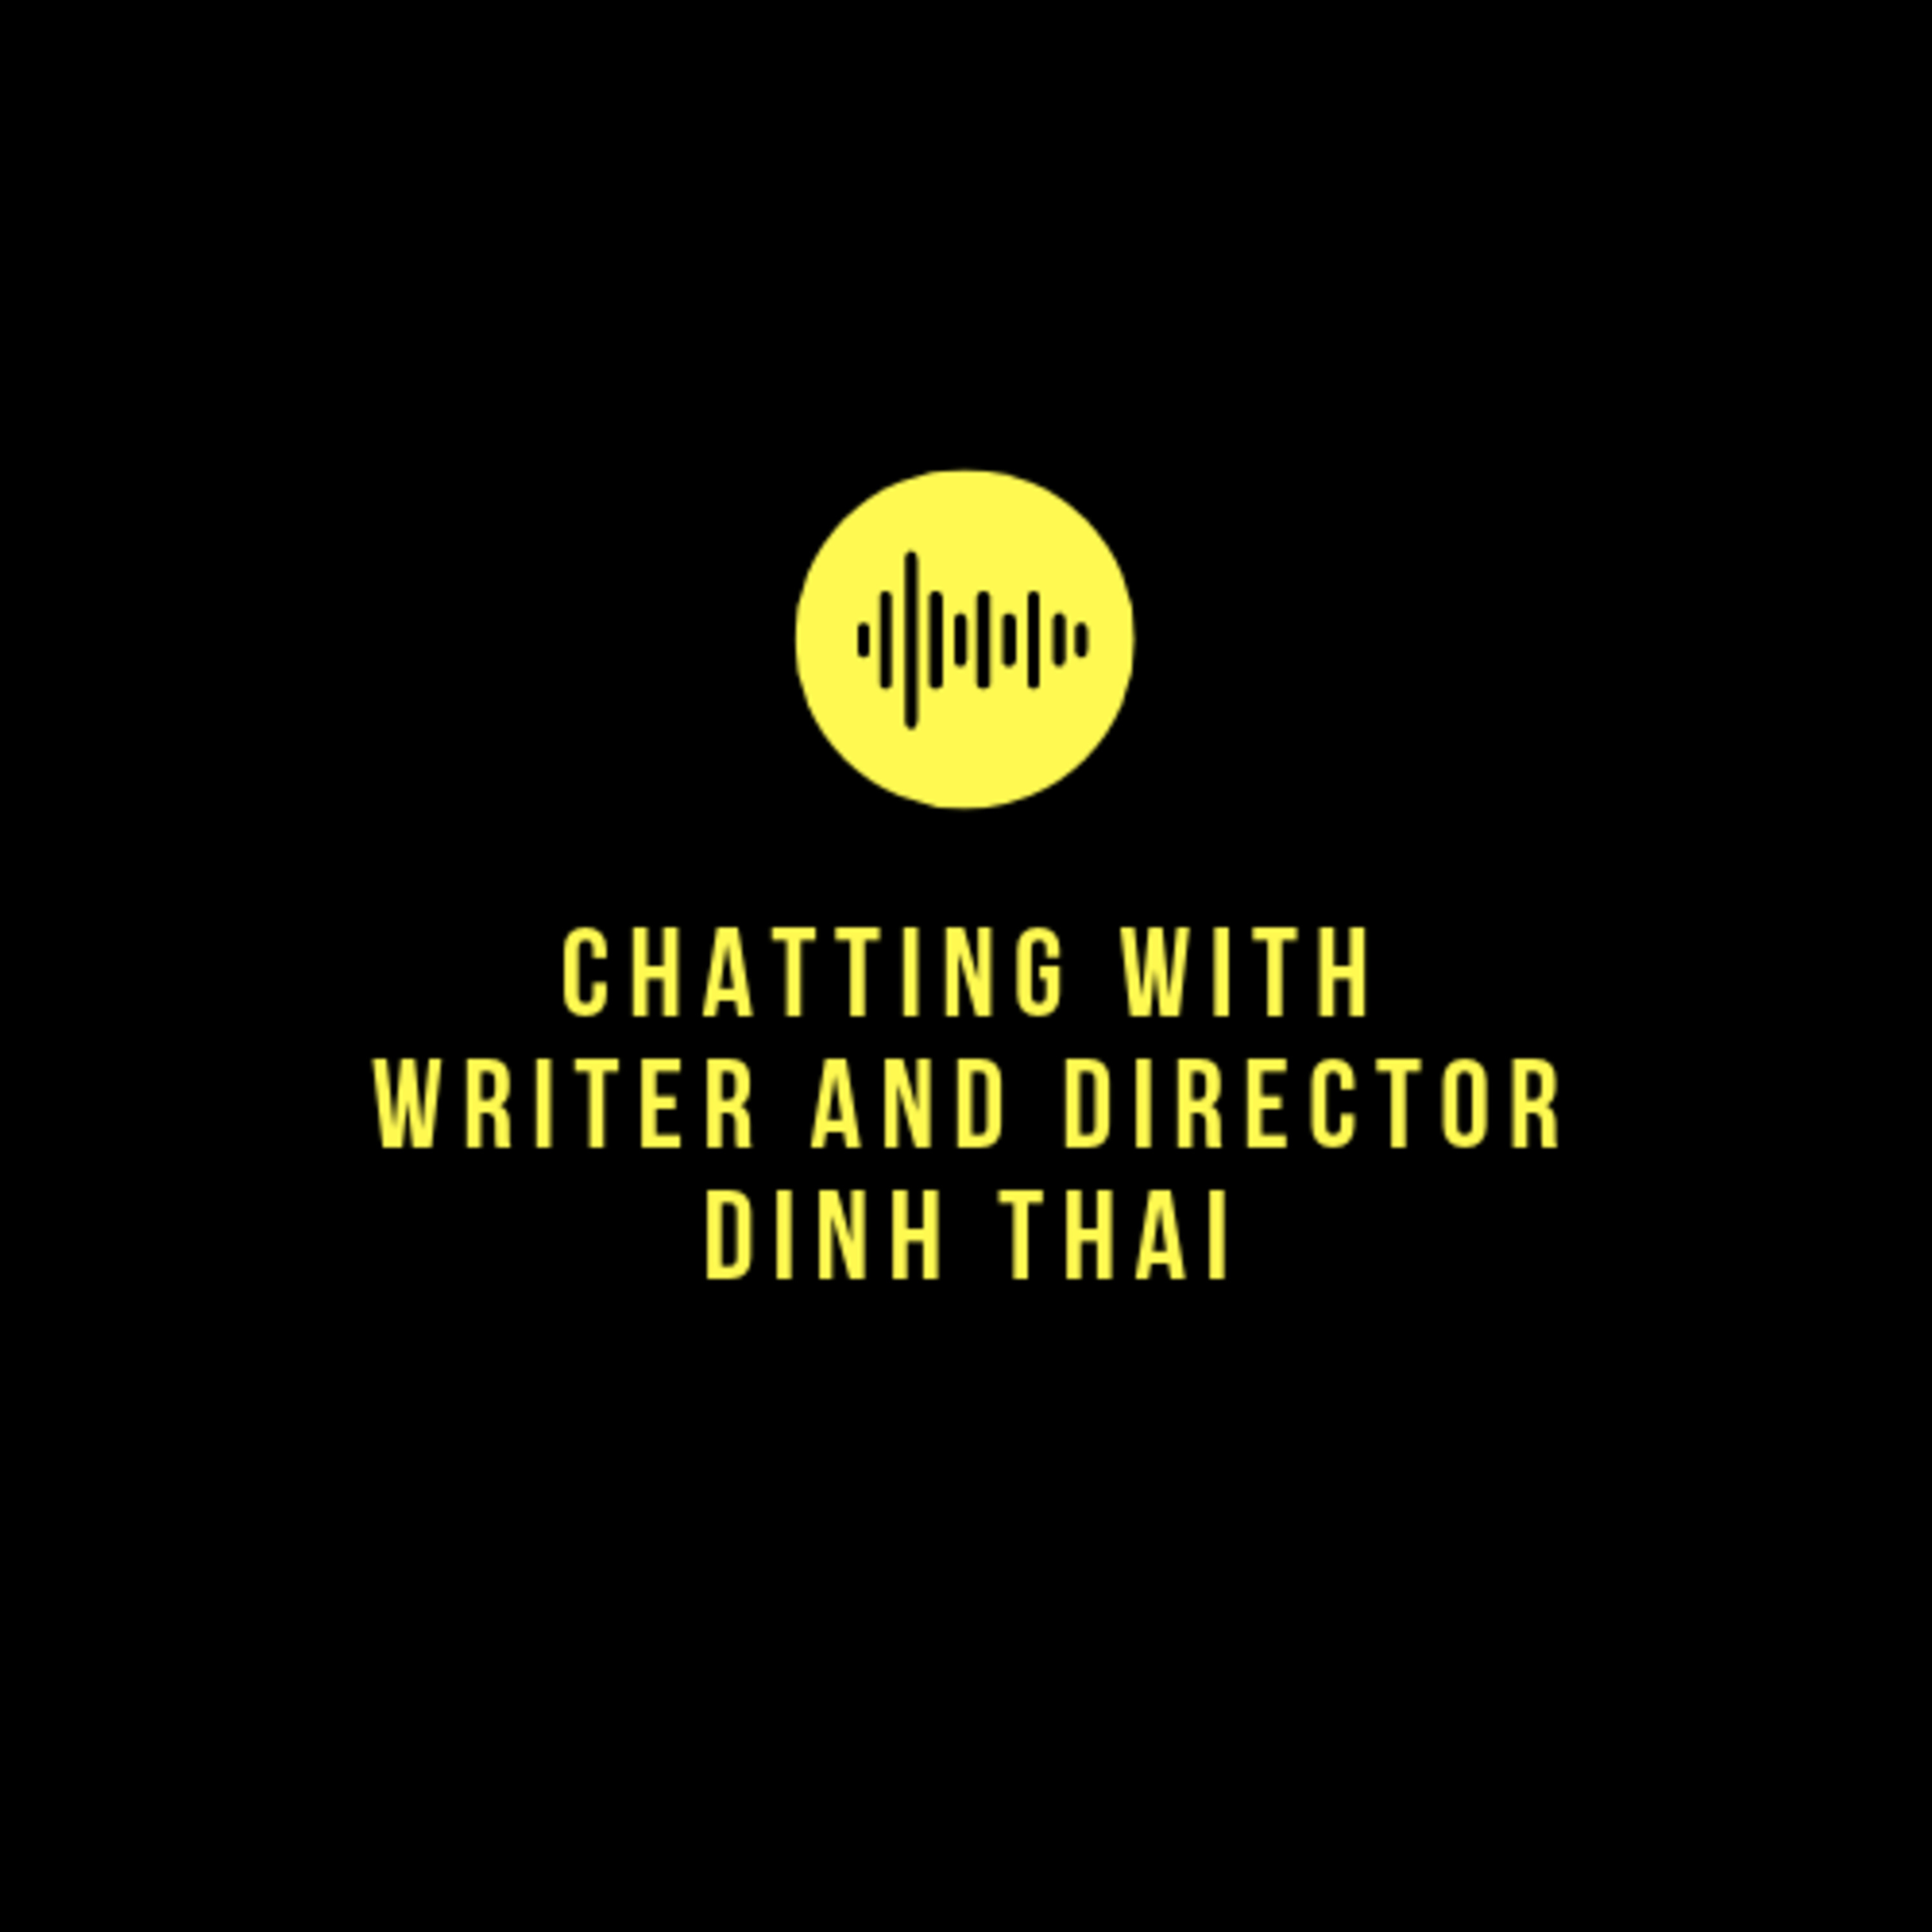 8. Chatting with Dinh Thai, Writer and Director - Part 1